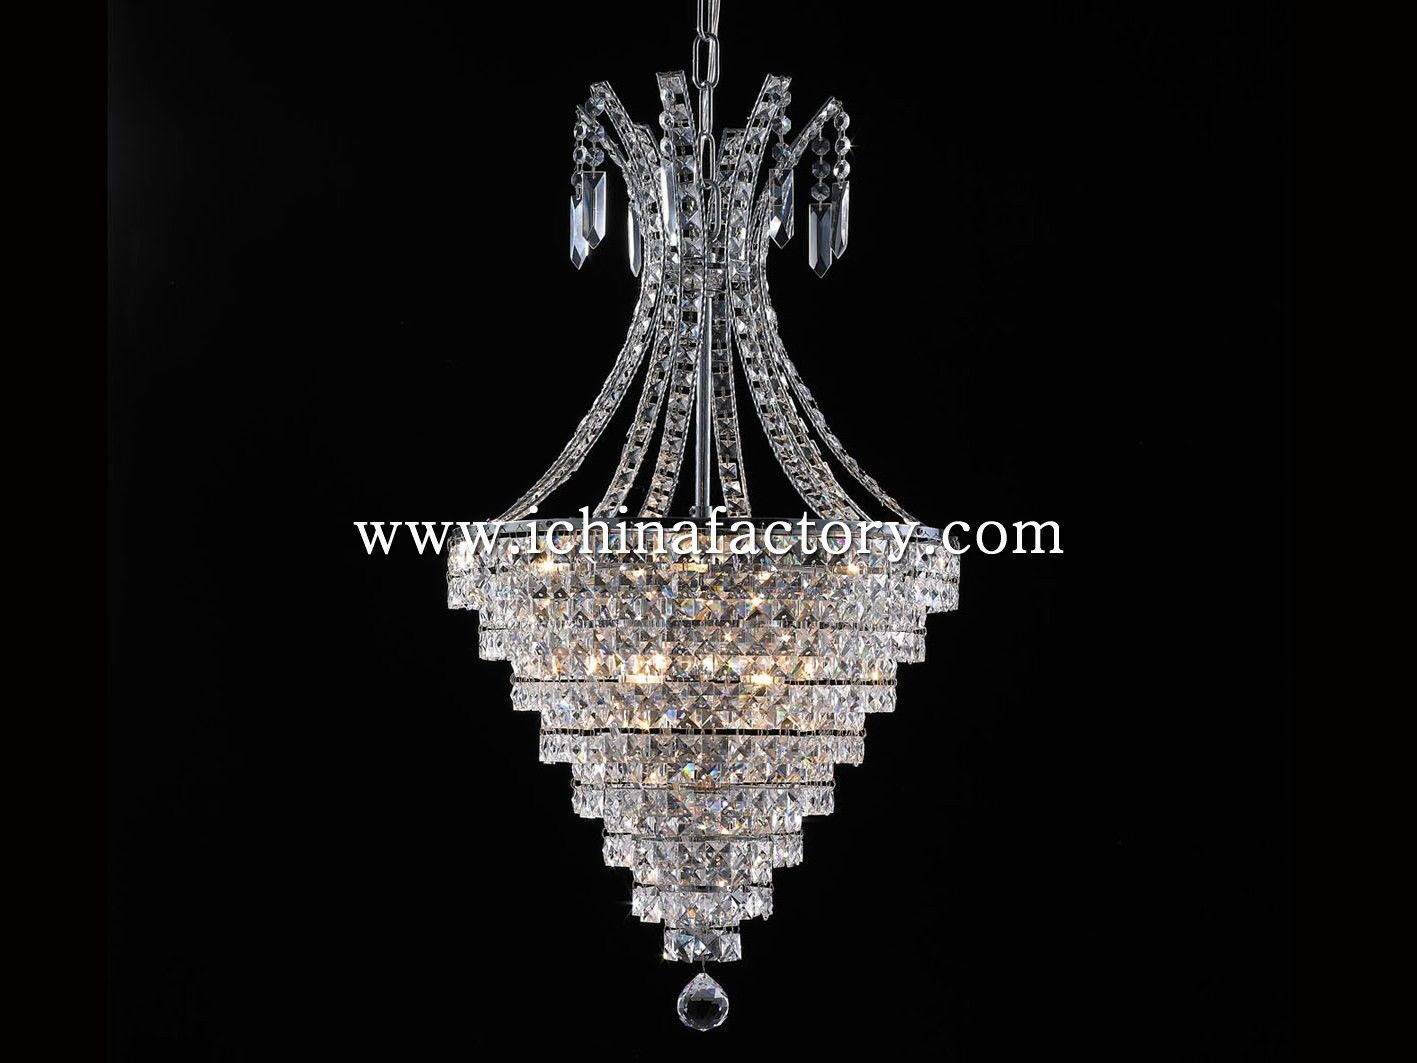 China Factory Wowlite Cone Shape Chandelier Pendant Lamp Dressed Within Chinese Chandelier (Image 2 of 15)